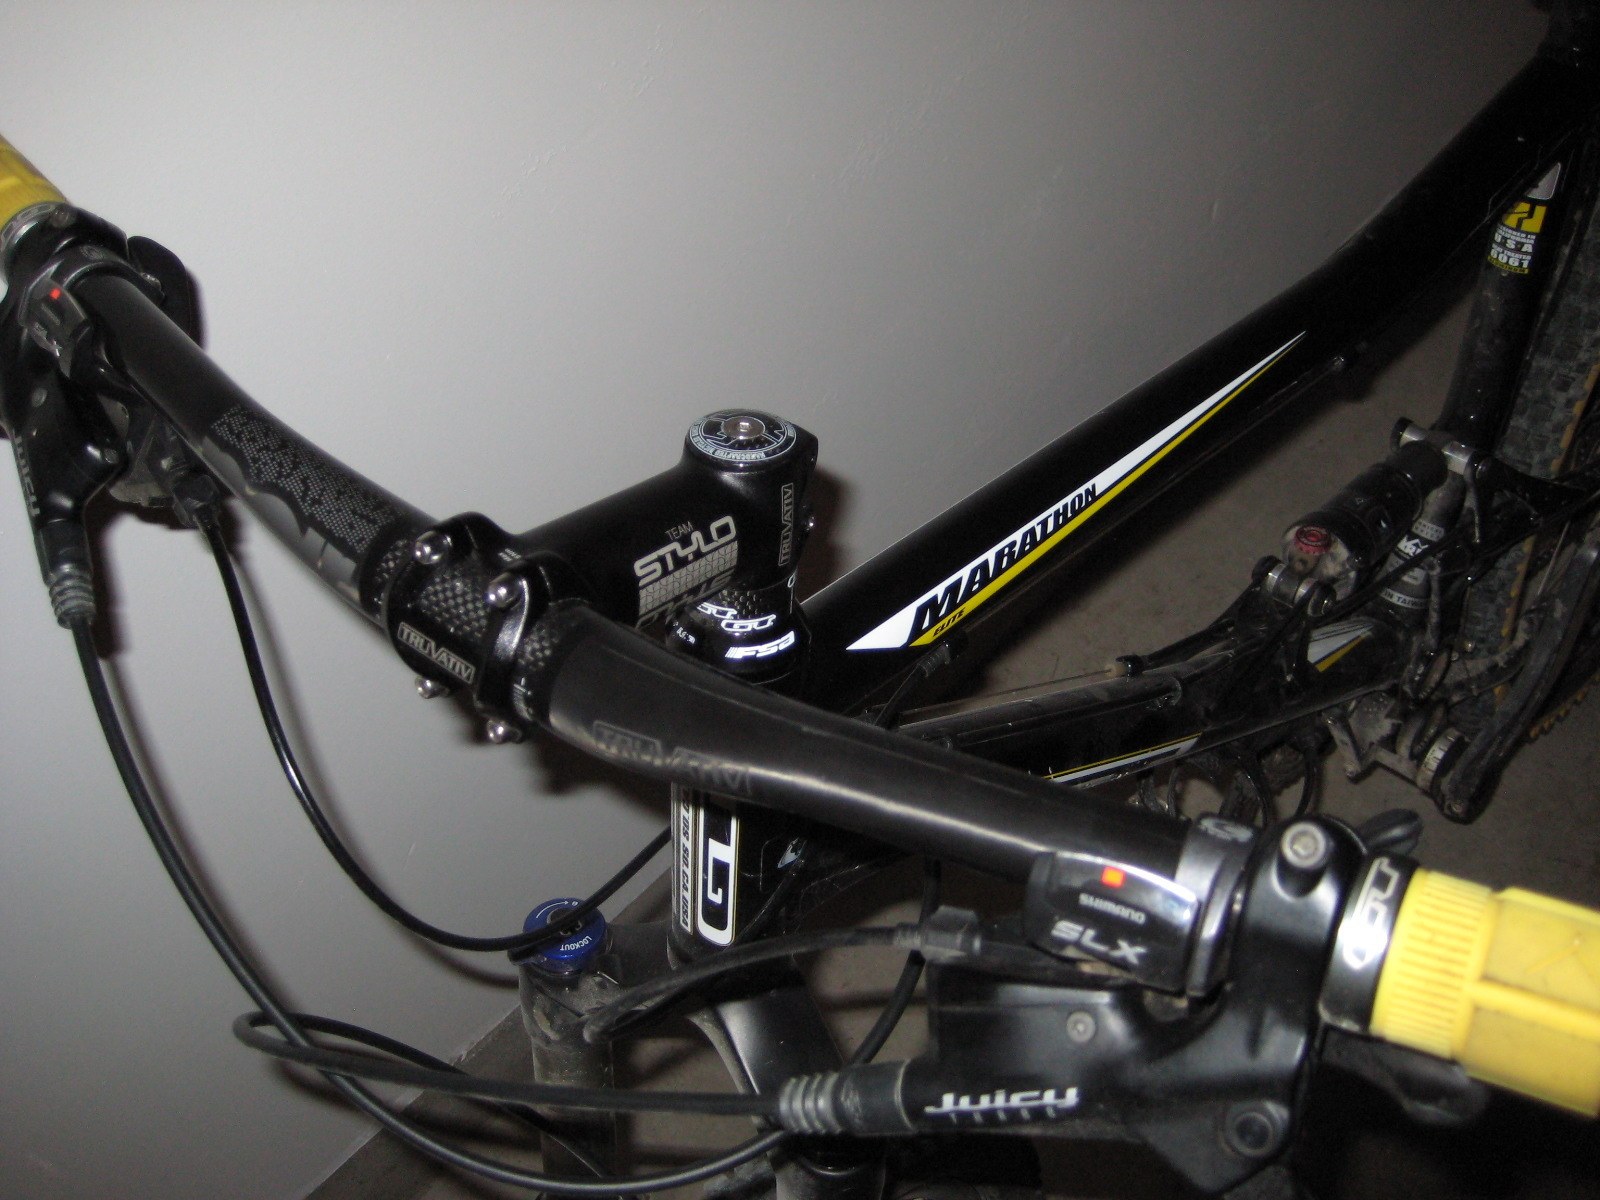 Upgrades / Mods for GT Marathon Elite-img_1995.jpg